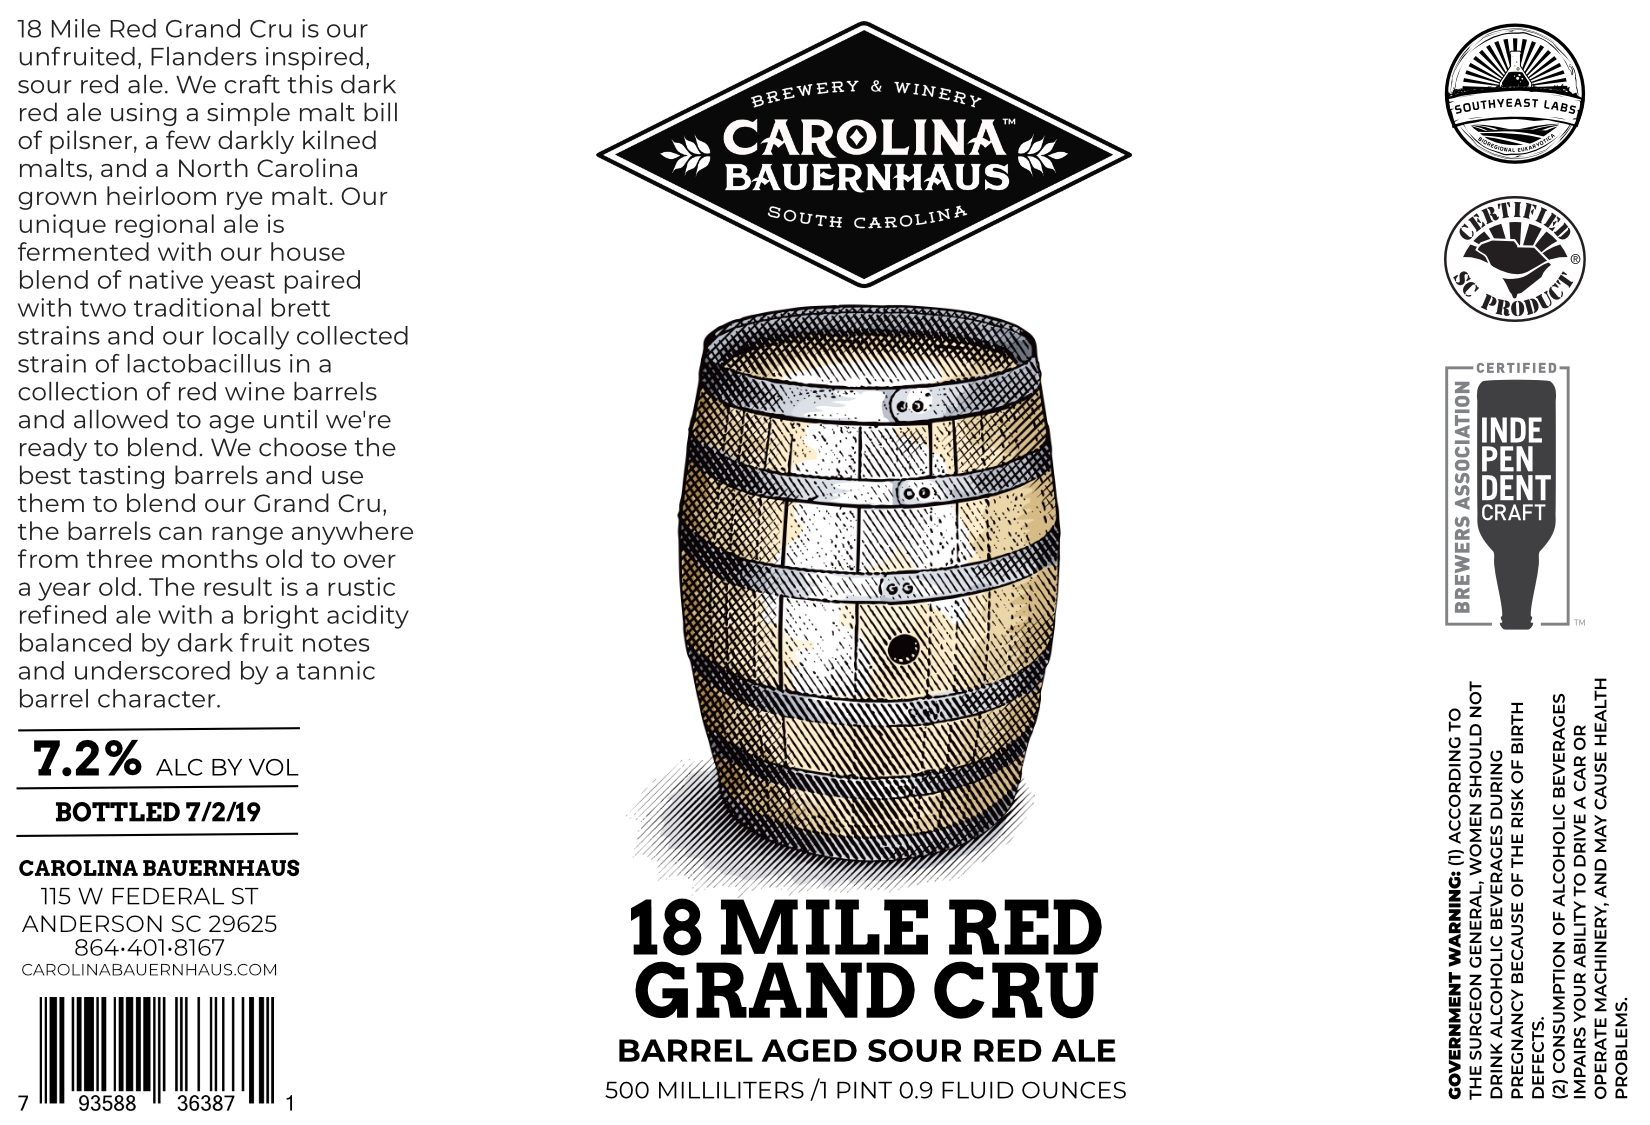 18 Mile Red Grand Cru